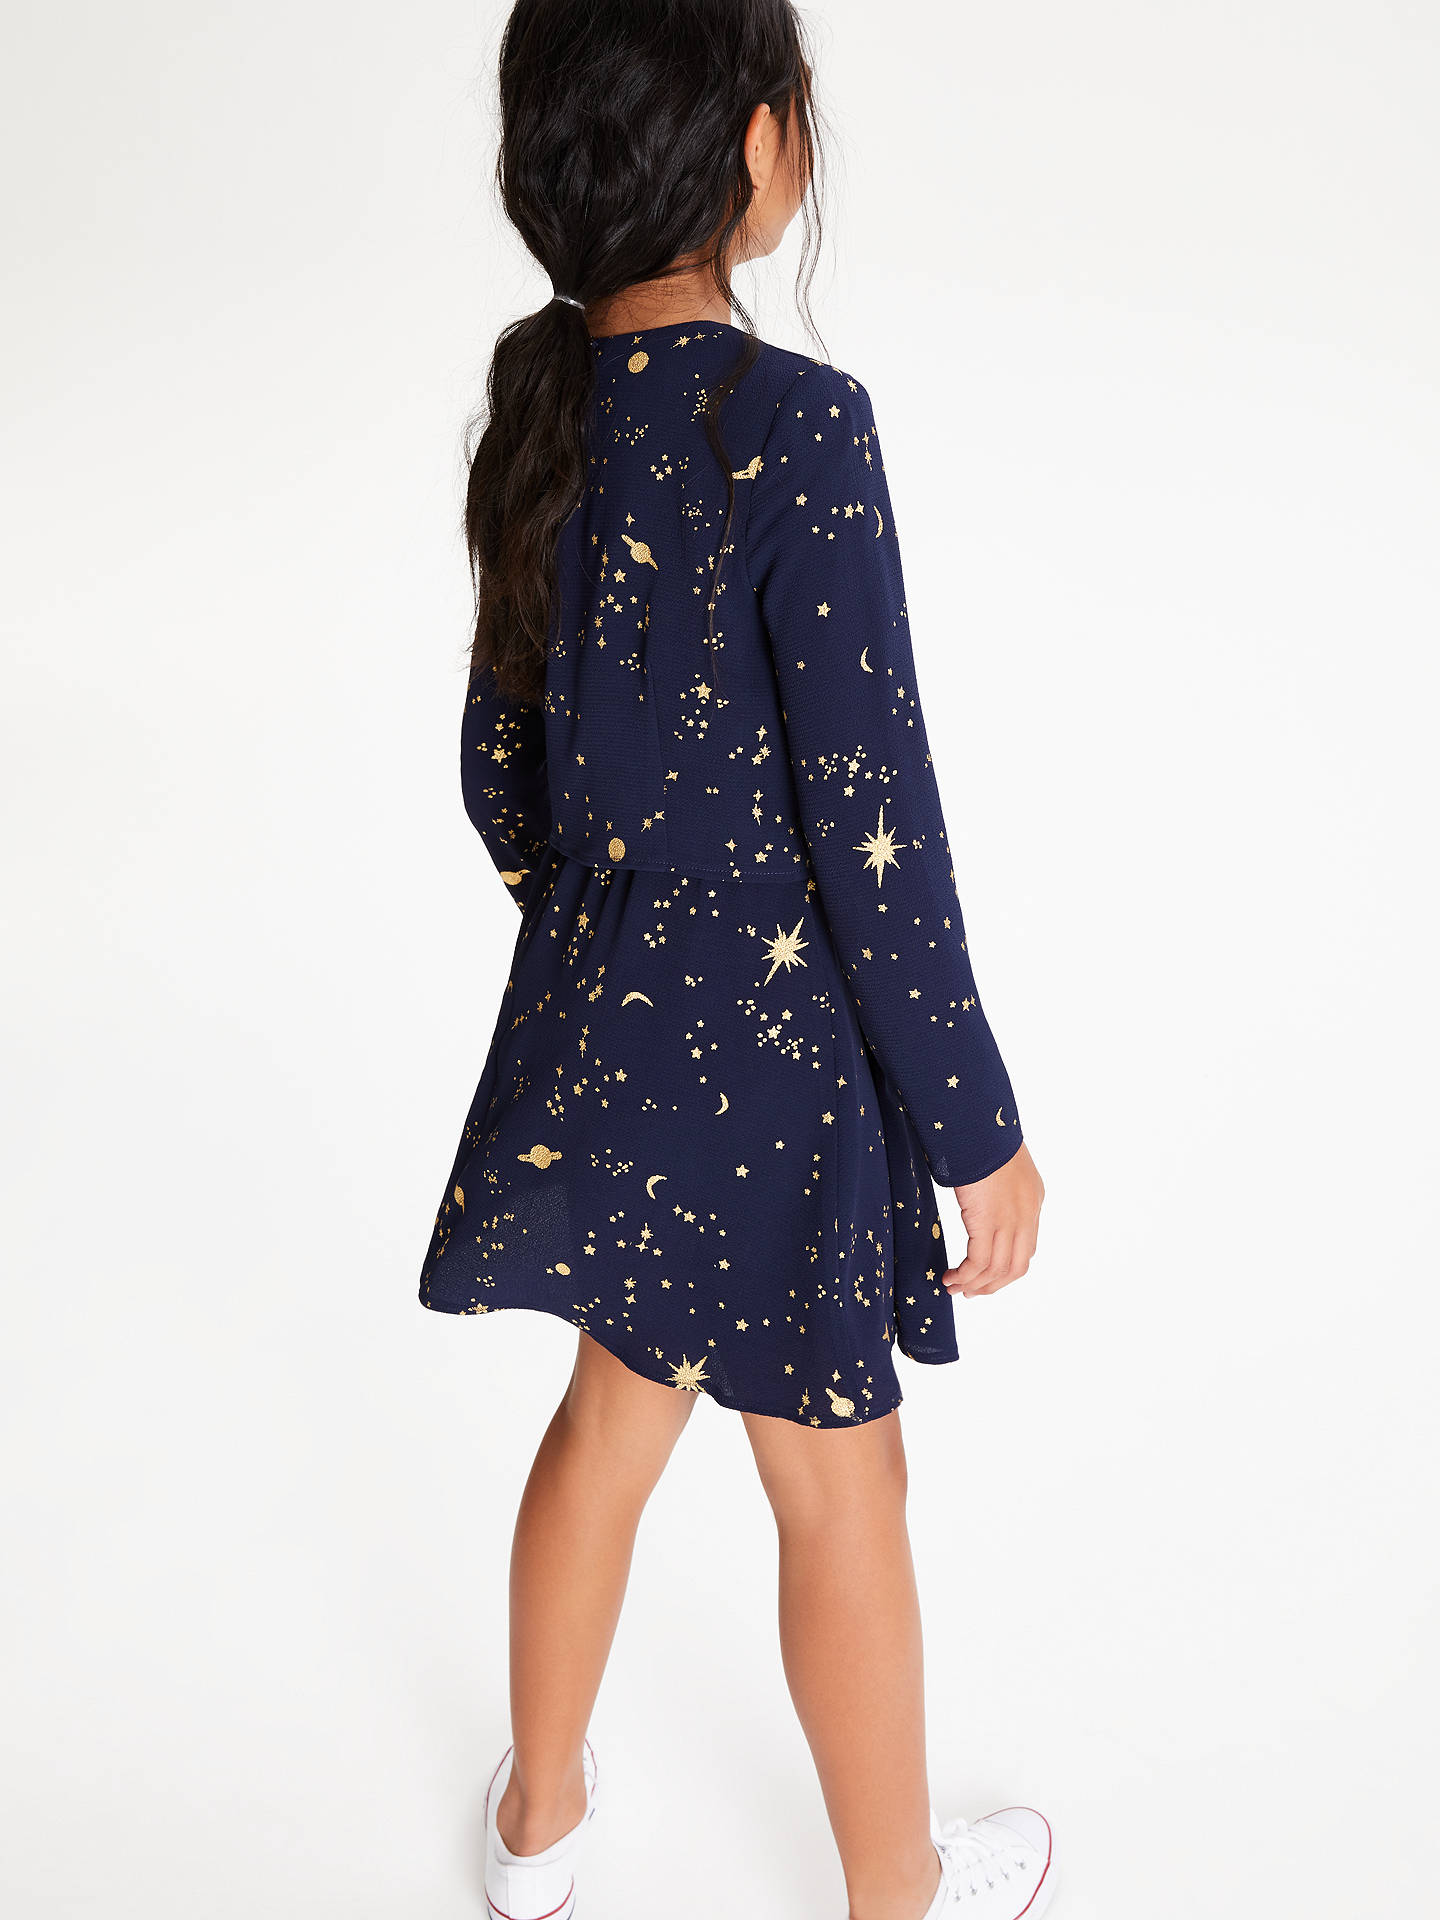 BuyJohn Lewis & Partners Girls' Celestial Print Dress, Navy, 8 years Online at johnlewis.com